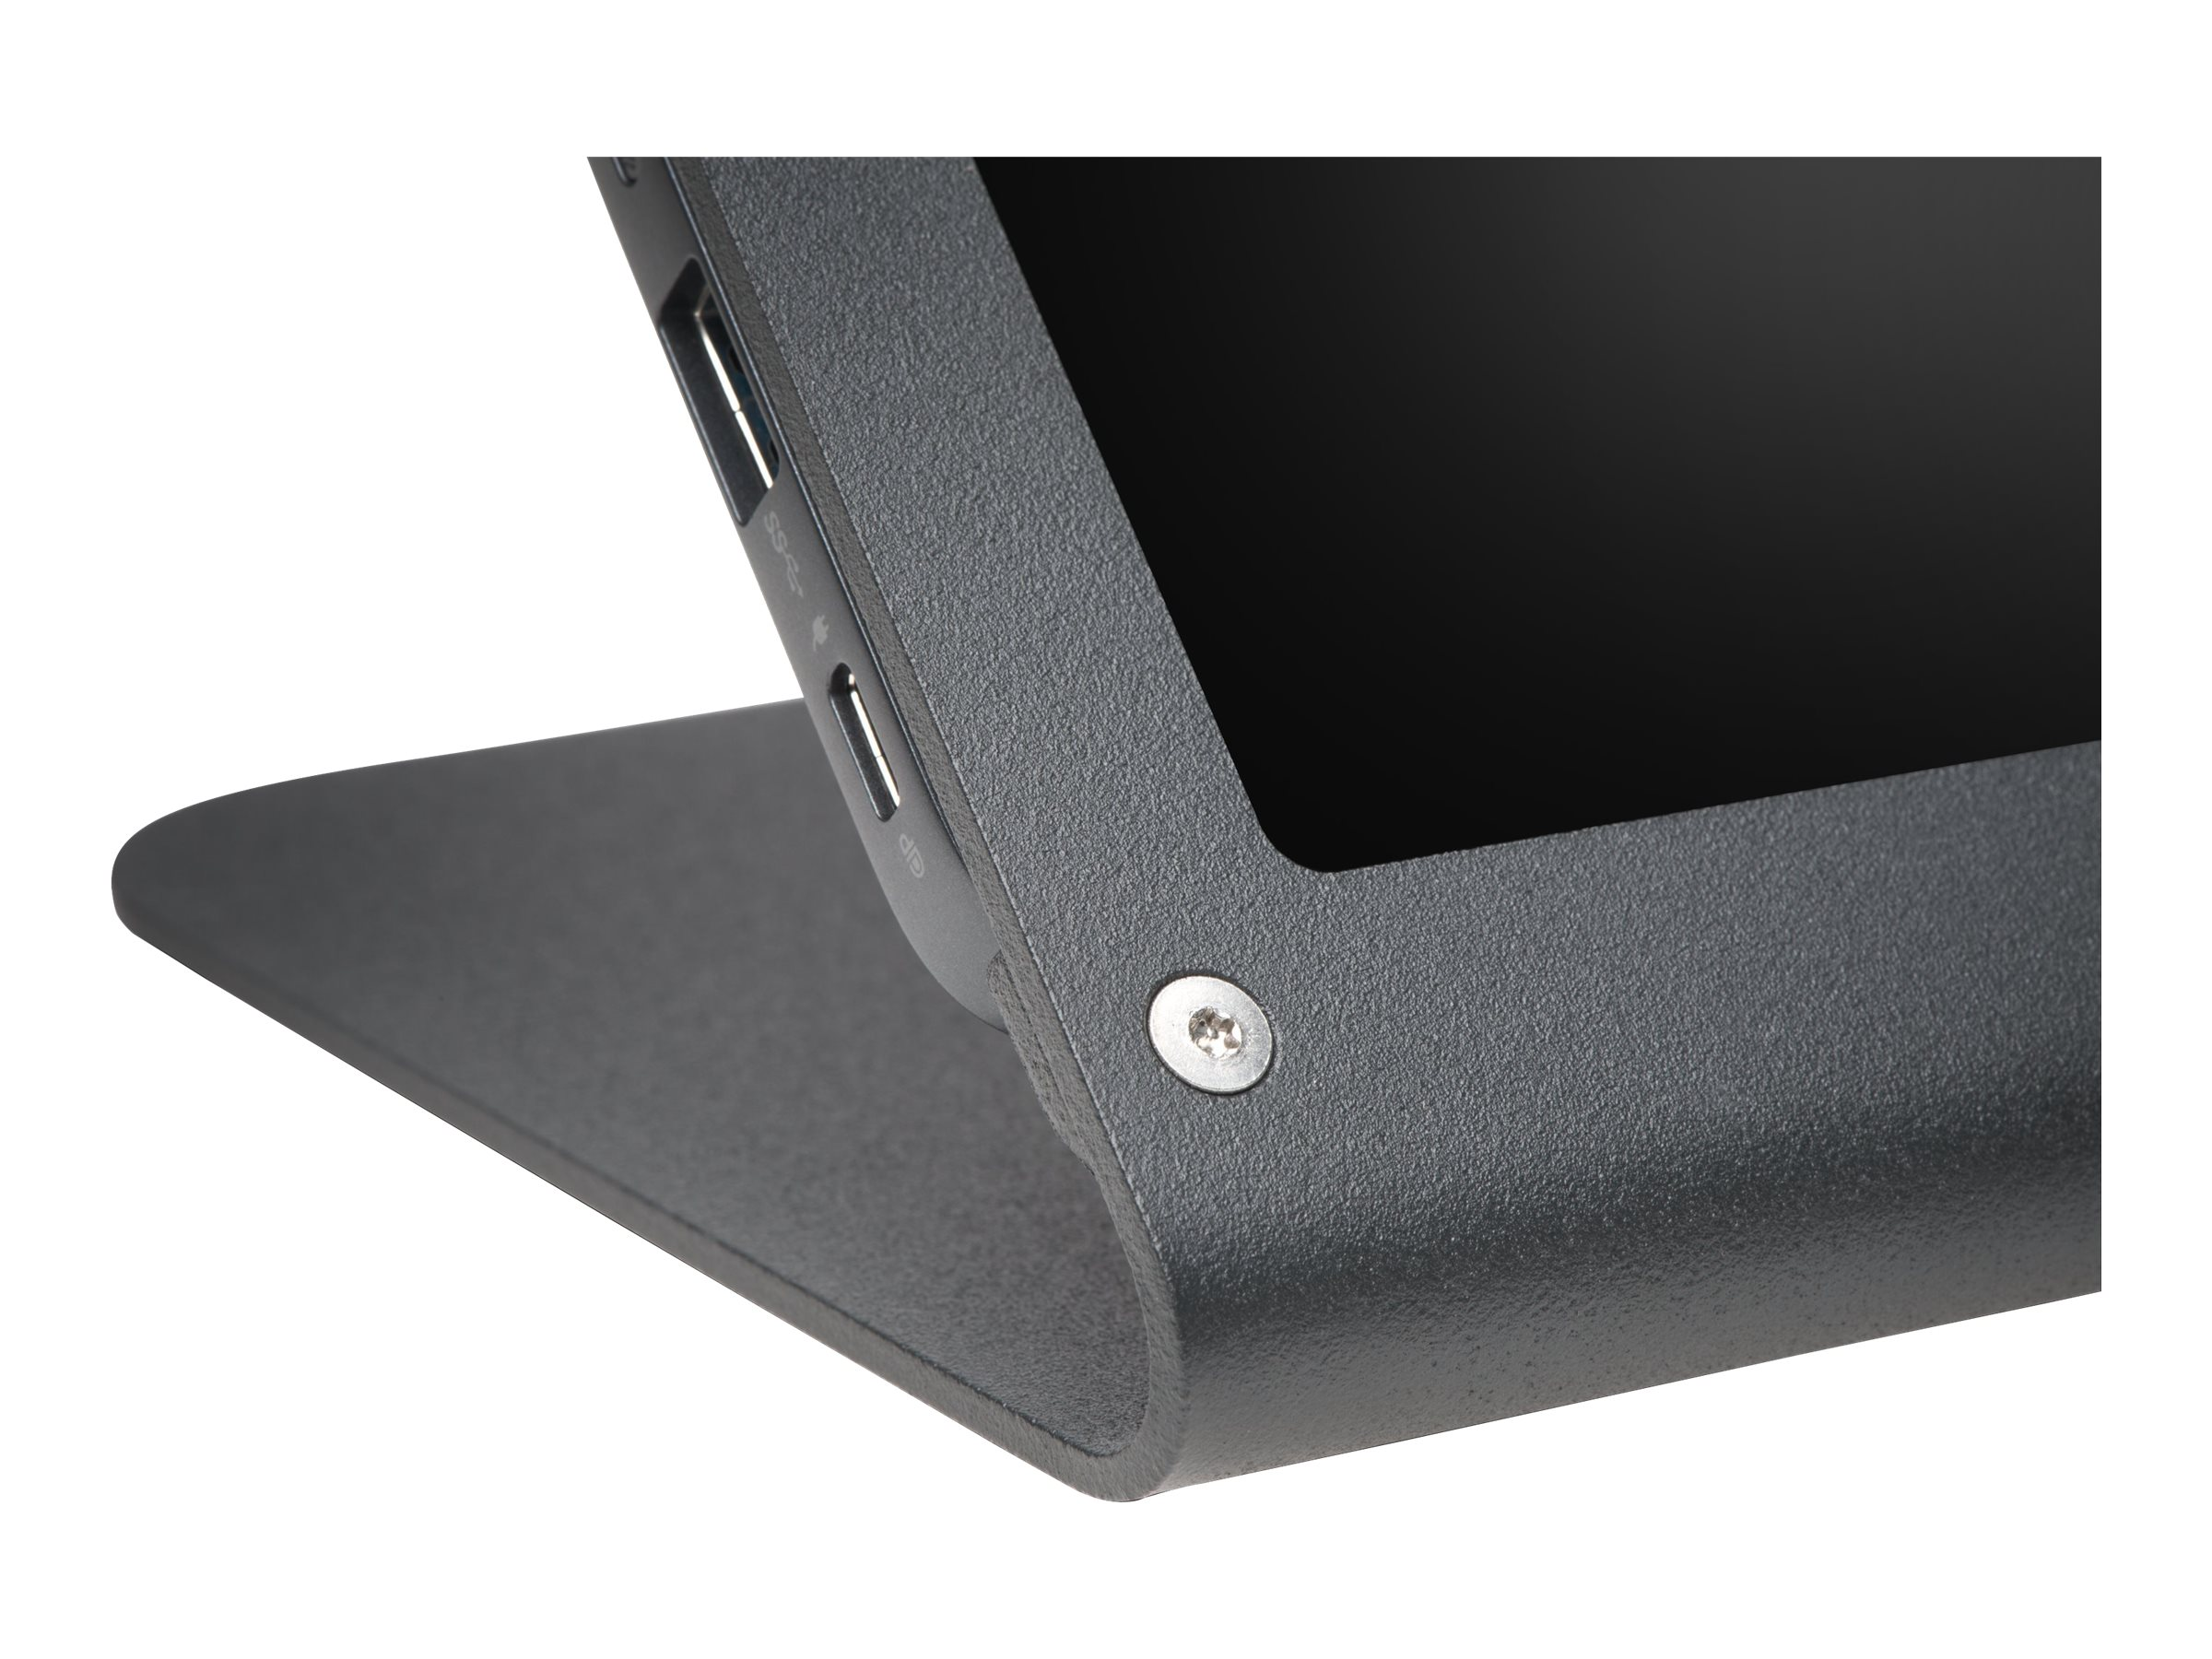 Kensington Windfall Tablet Stand for Venue 8 Pro, K67924US